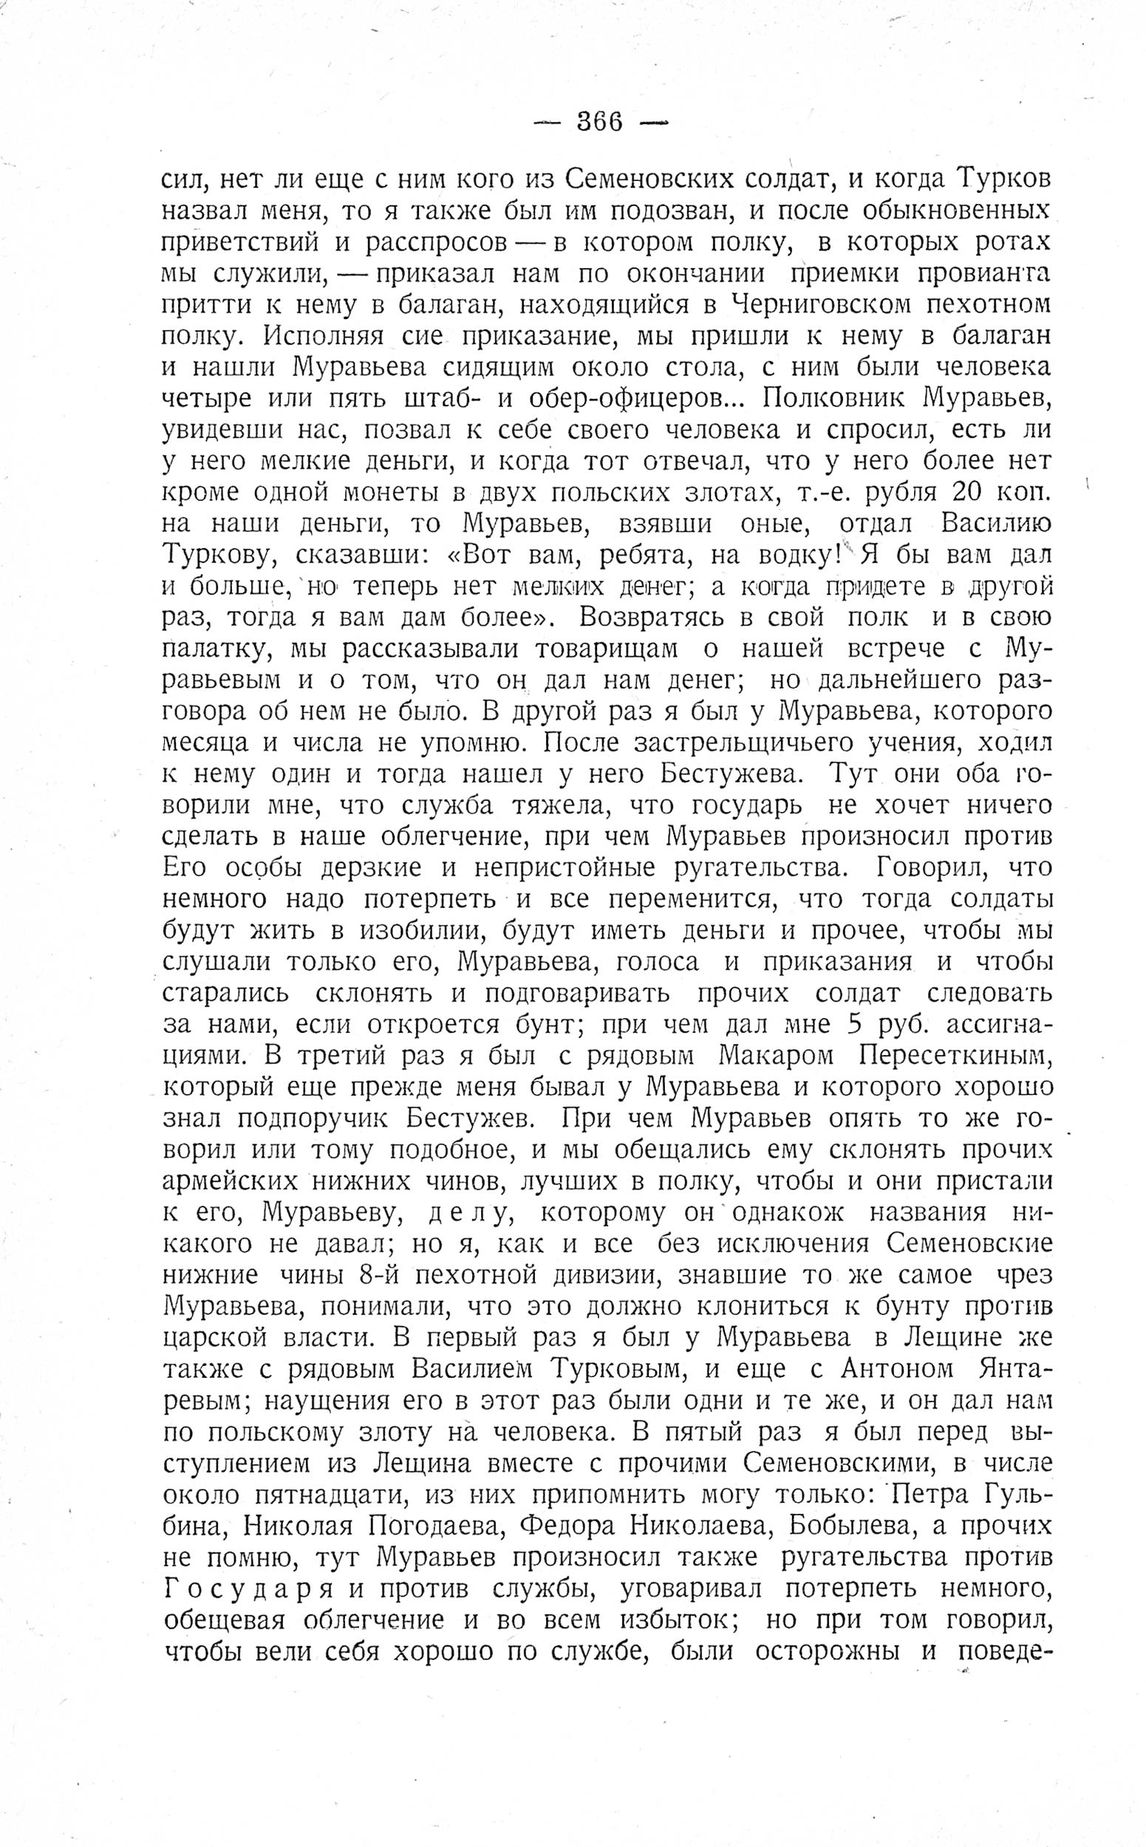 http://elib.shpl.ru/pages/625949/zooms/7